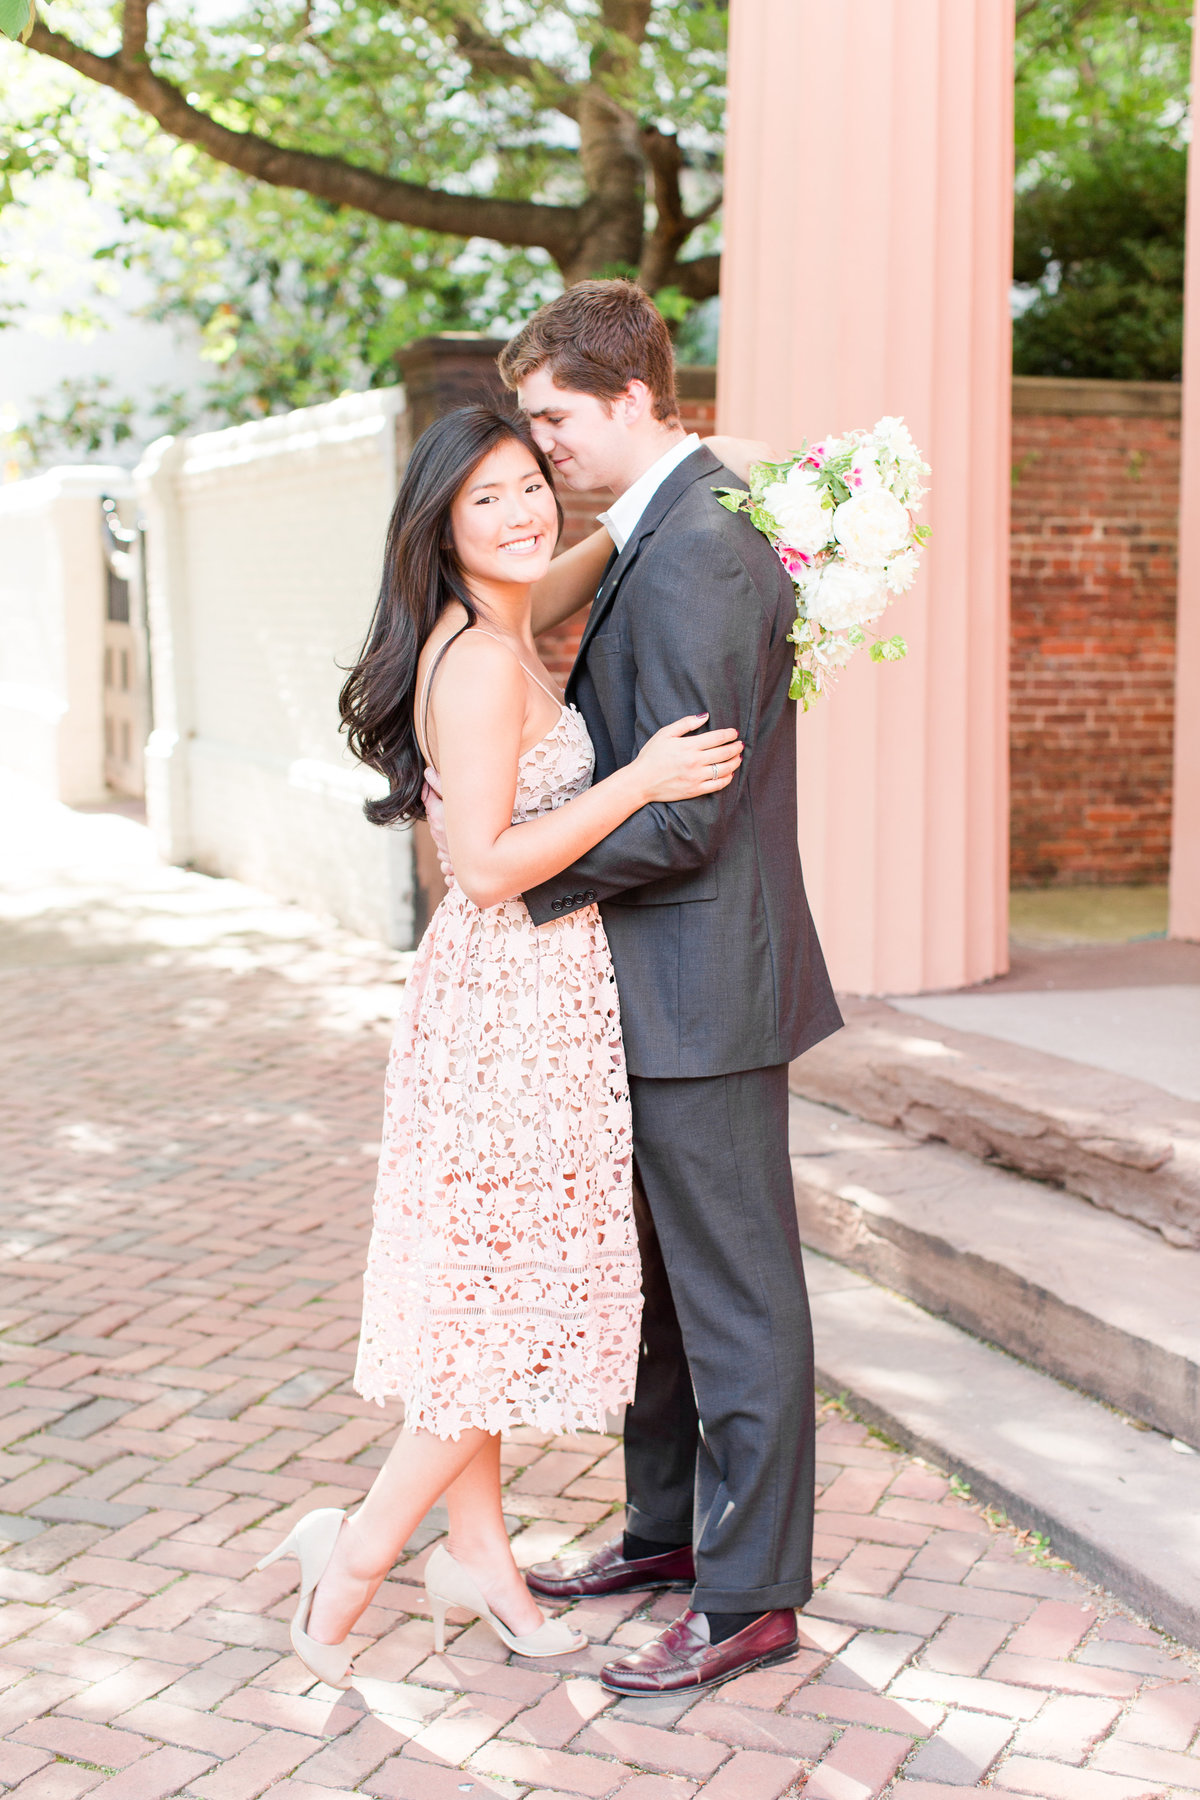 old-town-alexandria-virginia-engagement-photos-jackie-taylor-bethanne-arthur-photography-photos-34